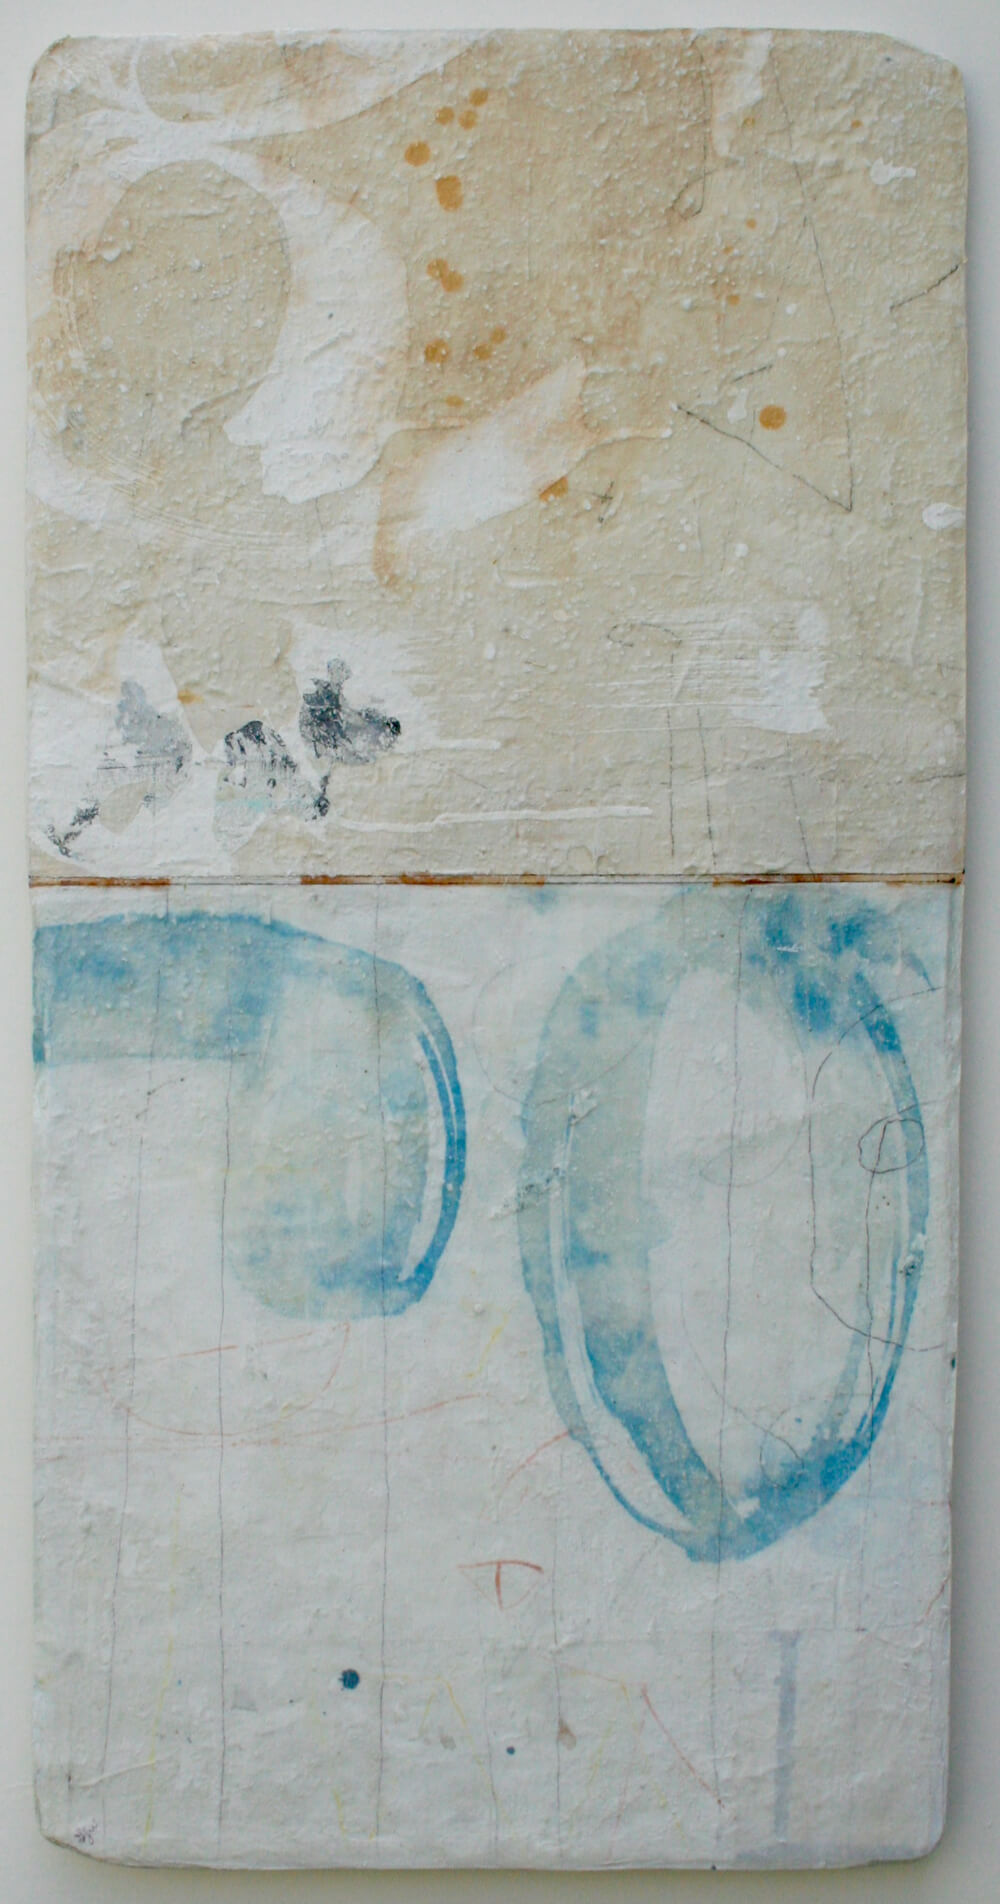 blue yoni  mixed media / paper / wood  30 x 15 x 1  sold